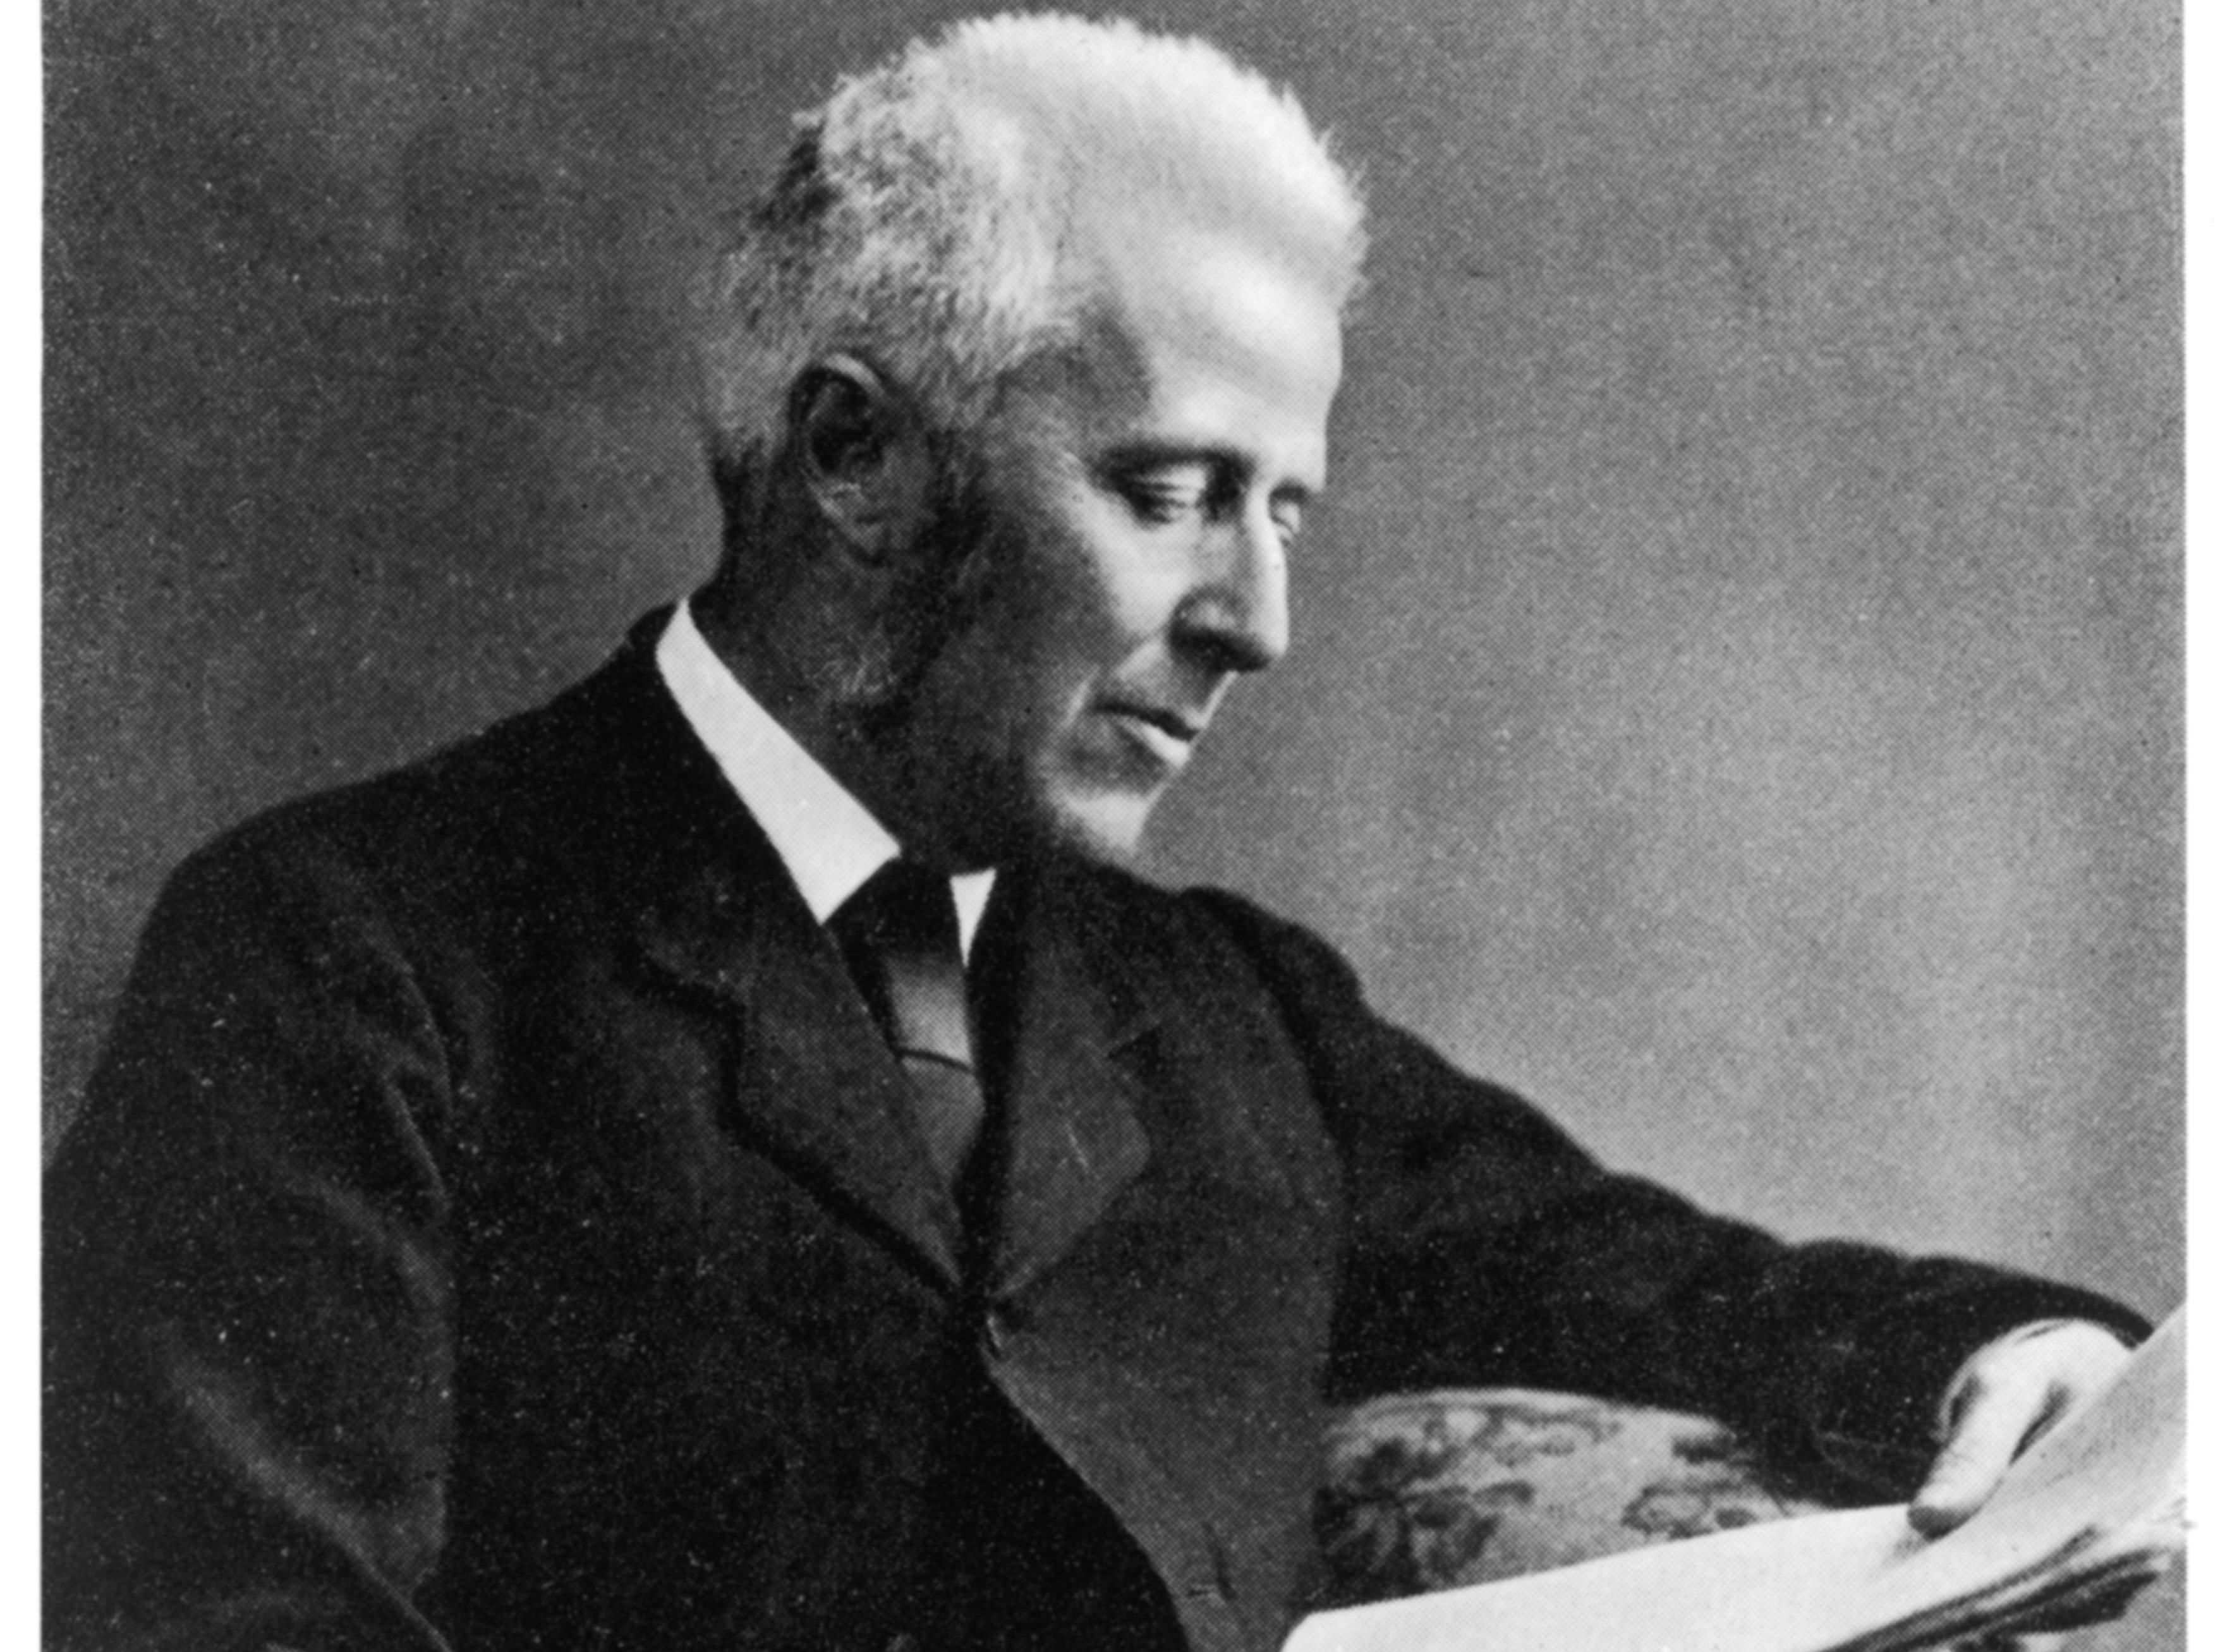 Dr Joseph Bell, surgeon at Edinburgh  University school of medicine  where he taught Conan Doyle  and inspired the character of  Sherlock Holmes. Date: 1837 - 1911